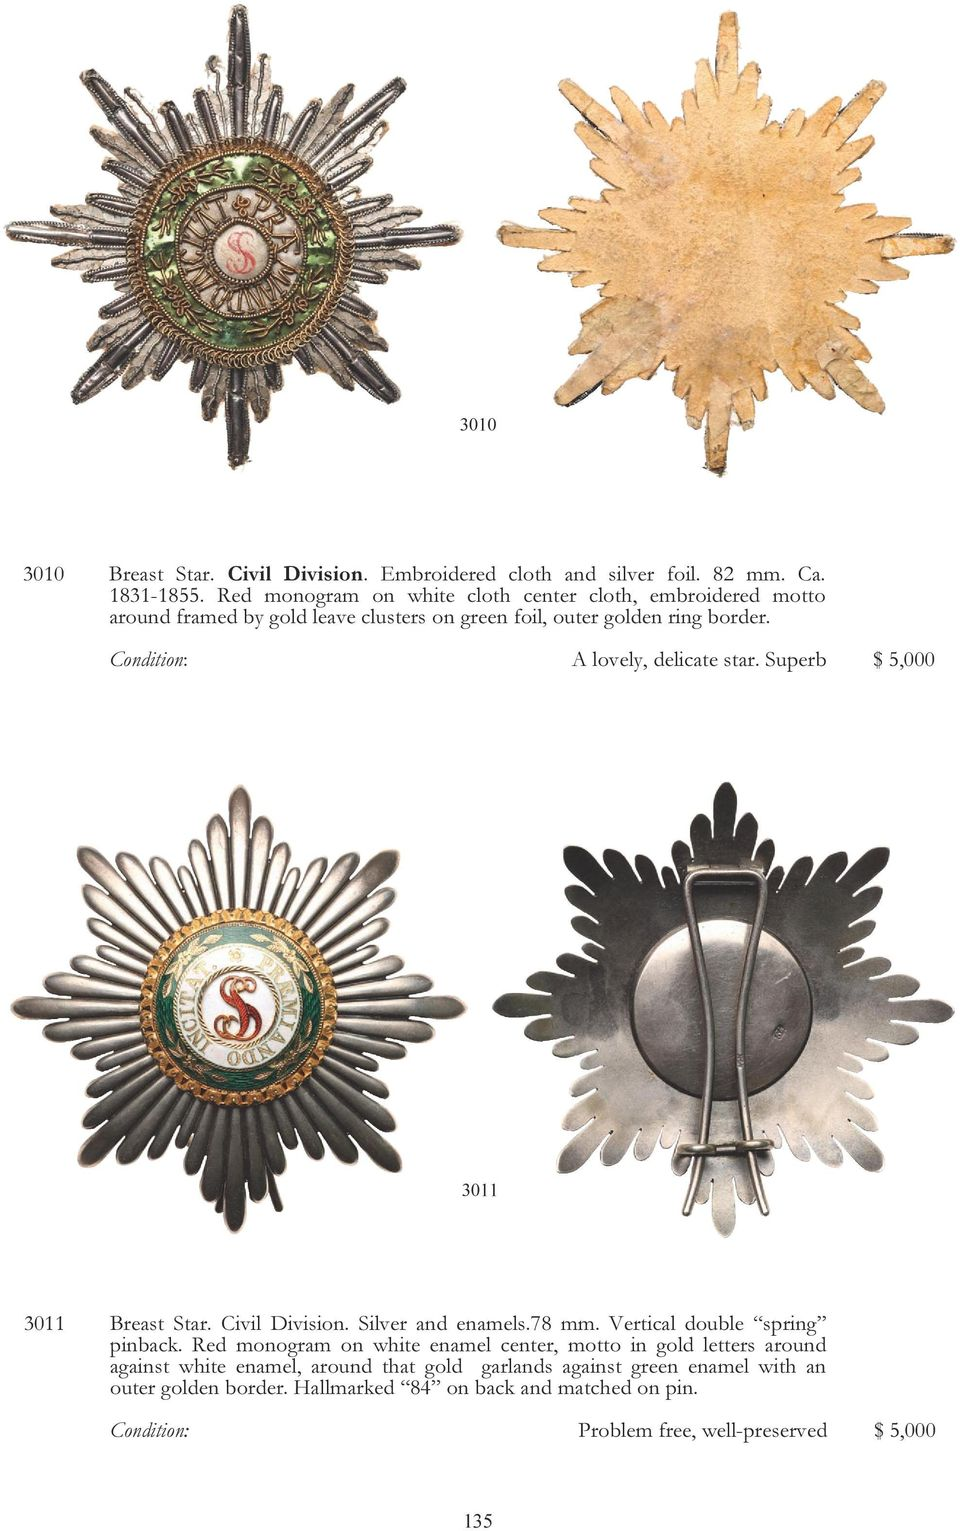 Condition: A lovely, delicate star. Superb $ 5,000 3011 3011 Breast Star. Civil Division. Silver and enamels.78 mm. Vertical double spring pinback.